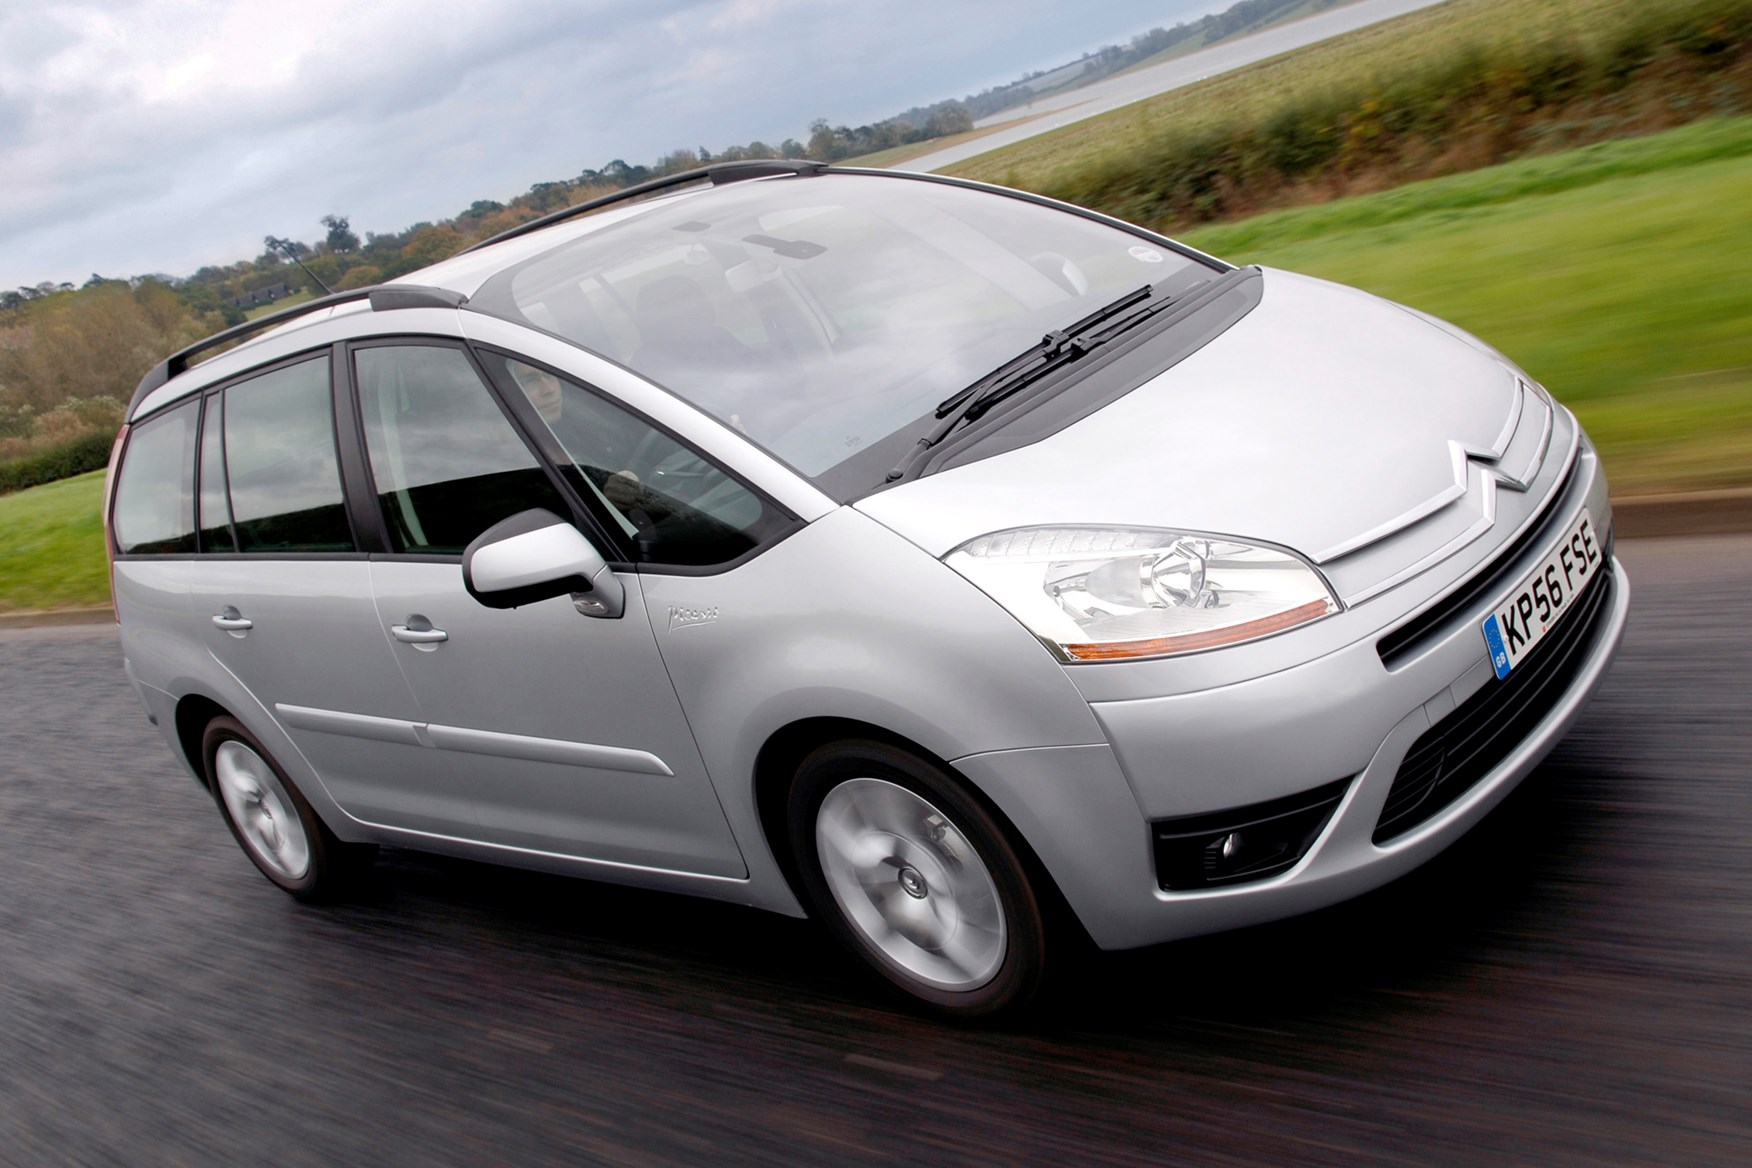 The best cheap family cars - Citroen Grand C4 Picasso